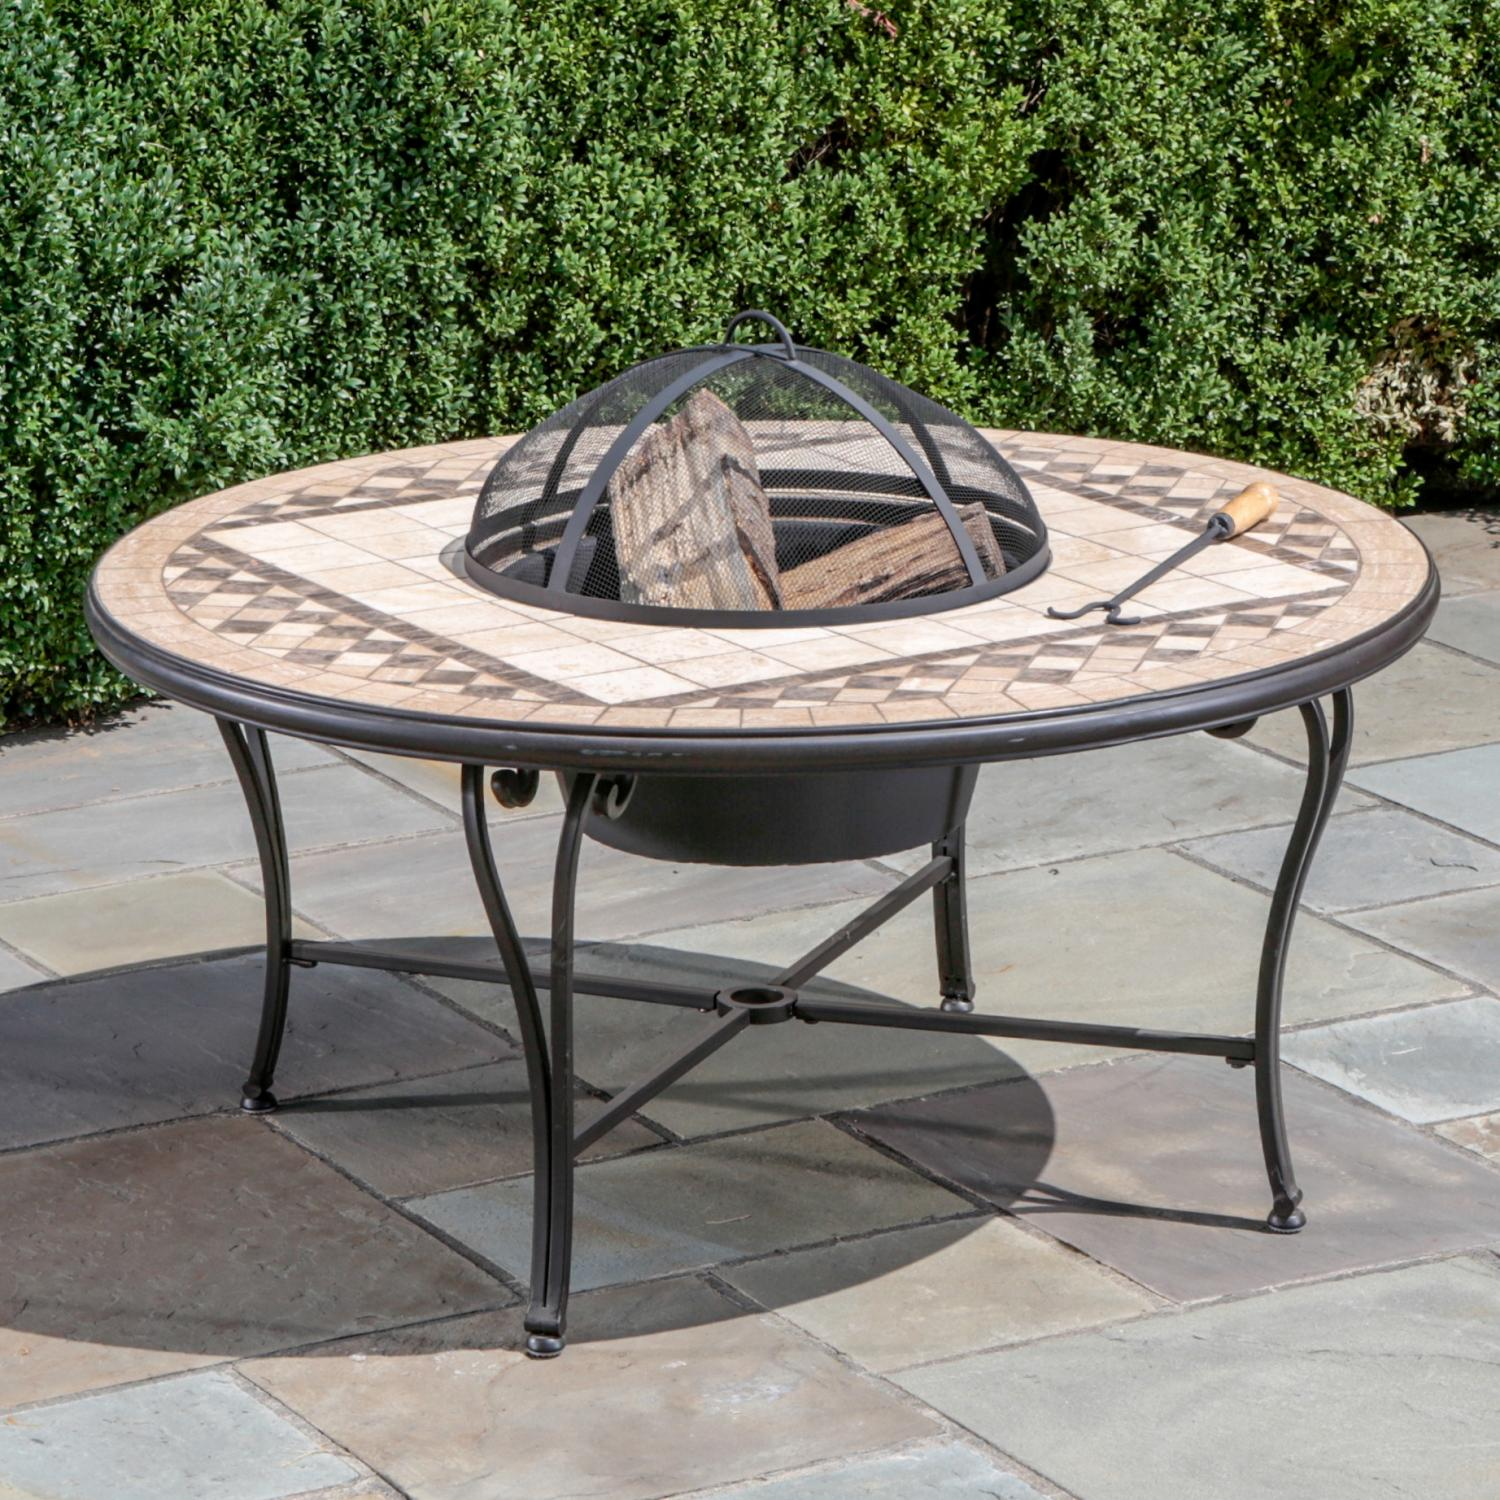 Picture of Alfresco Home Basilica Mosaic Fire Pit & Beverage Cooler Table